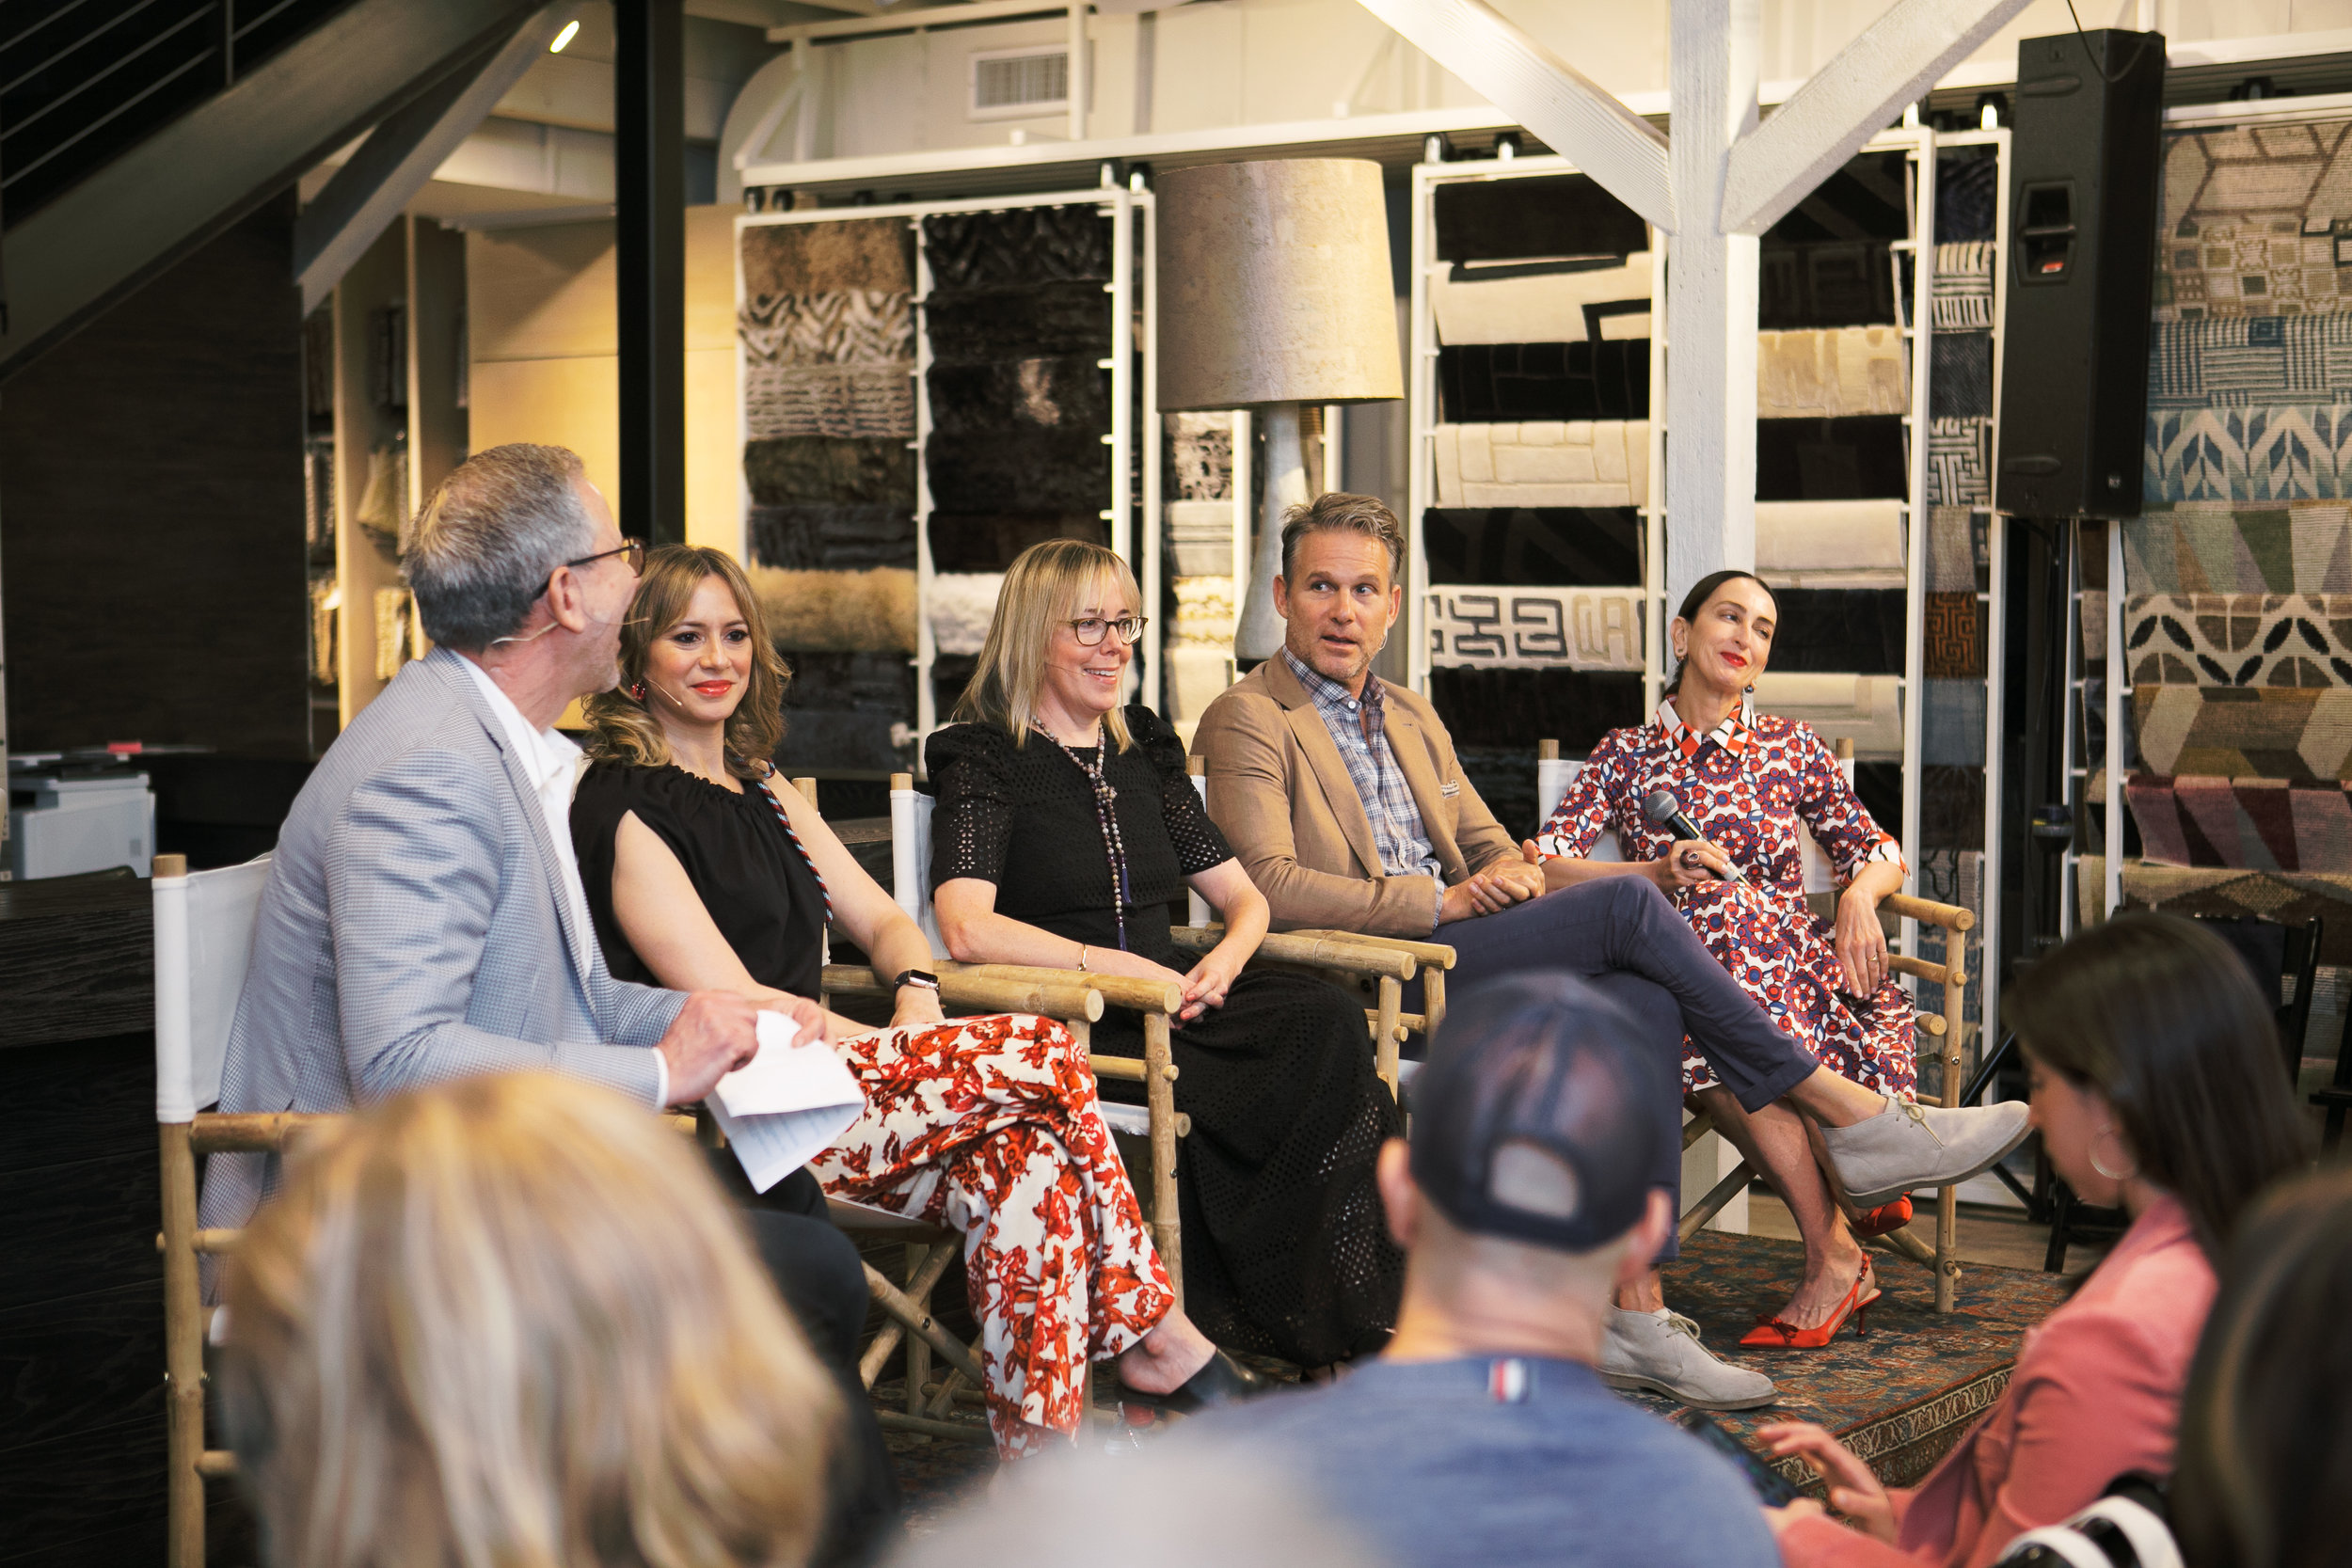 The P.R. panel moderated by Dering Hall's Michael Boodro (left.) included: Laura Urband, Sarah Boyd, Jeffrey Alan Marks, and Christina Juarez.